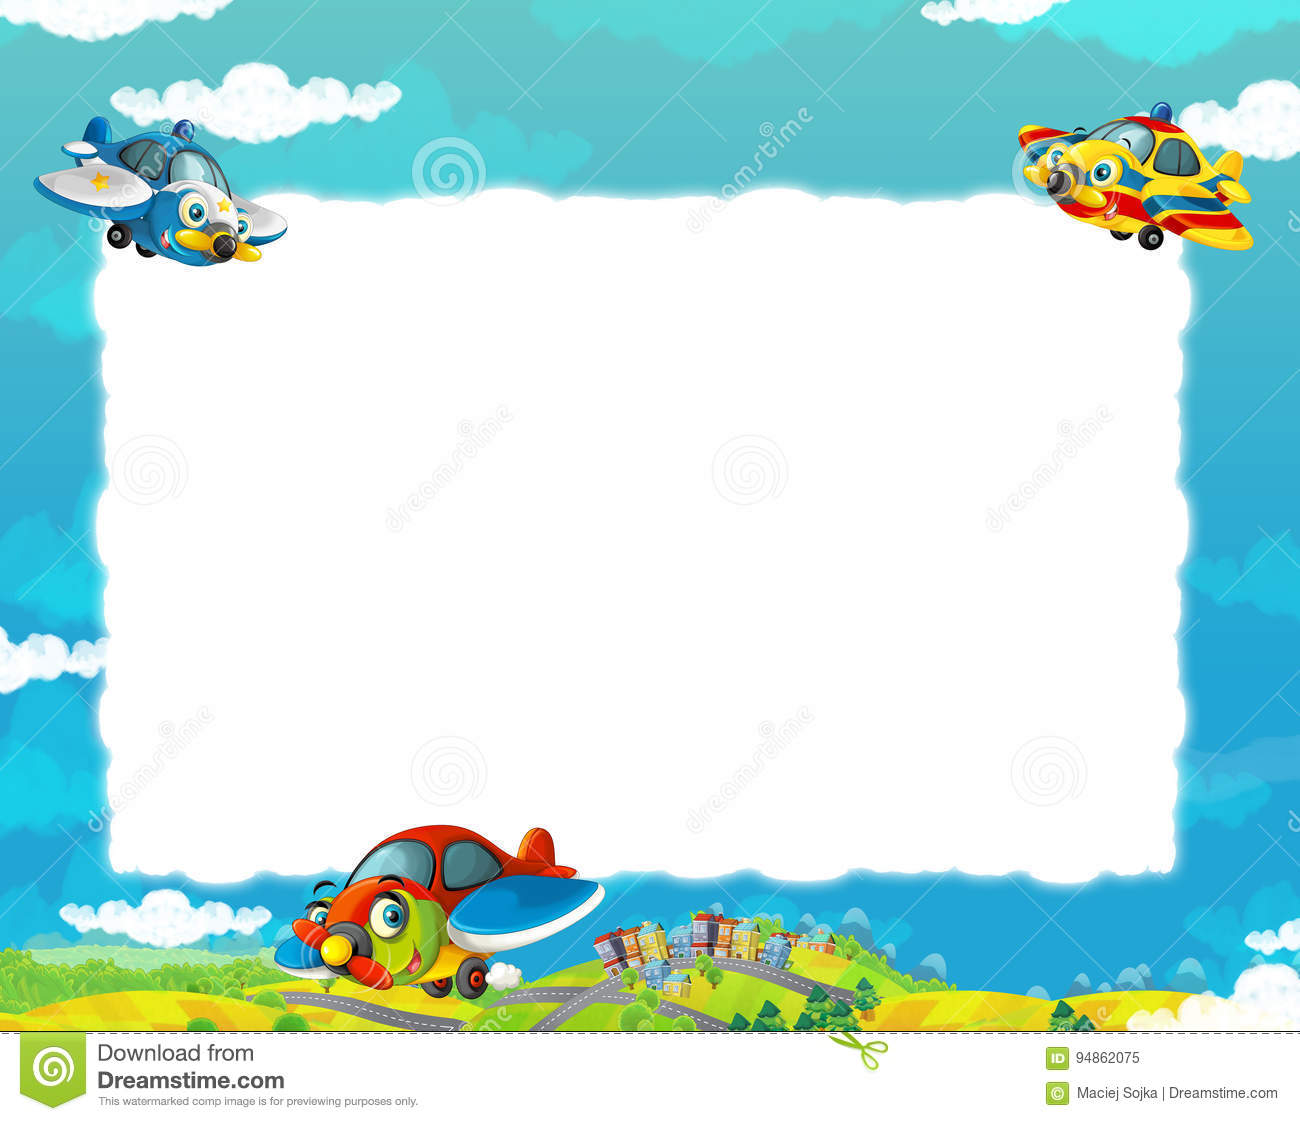 Cartoon happy and funny planes flying over some city / frame for different usage